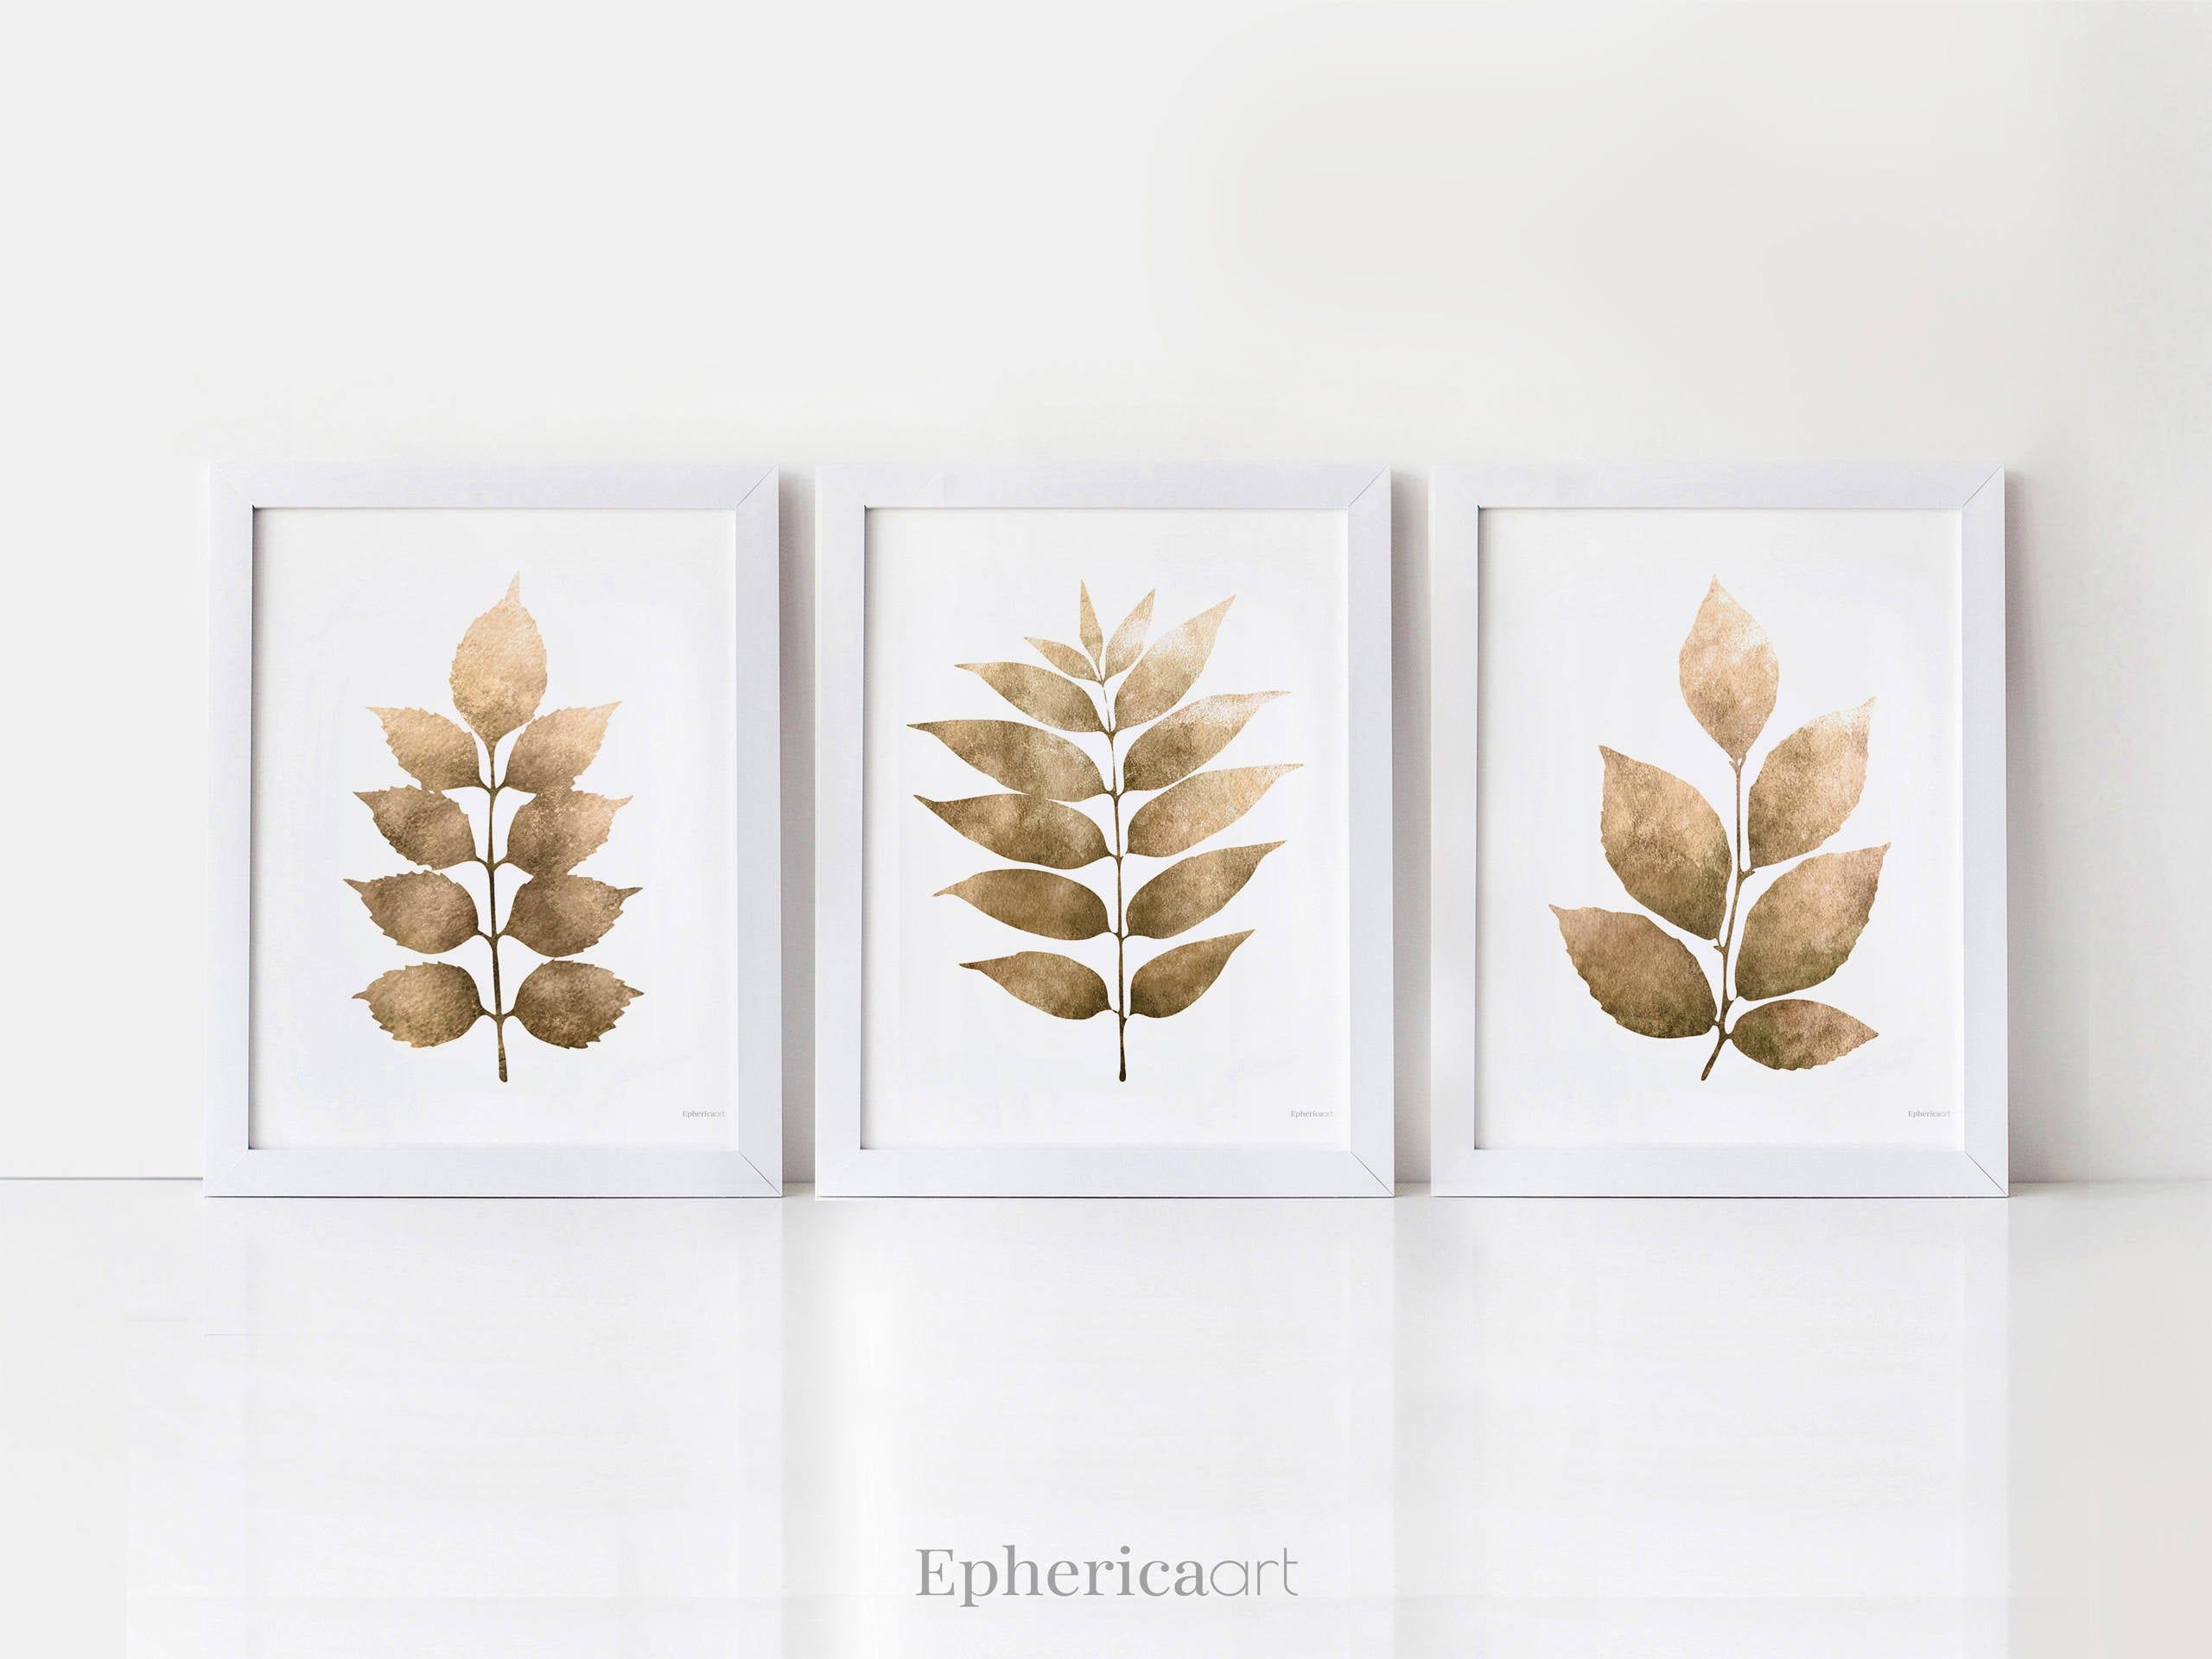 Leaf Wall Art Prints 3 Piece Wall Art Monochrome Art Set Bedroom Prints Wall Art Brown Decor Printable Wall Decor Bathroom Set Of 3 Prints